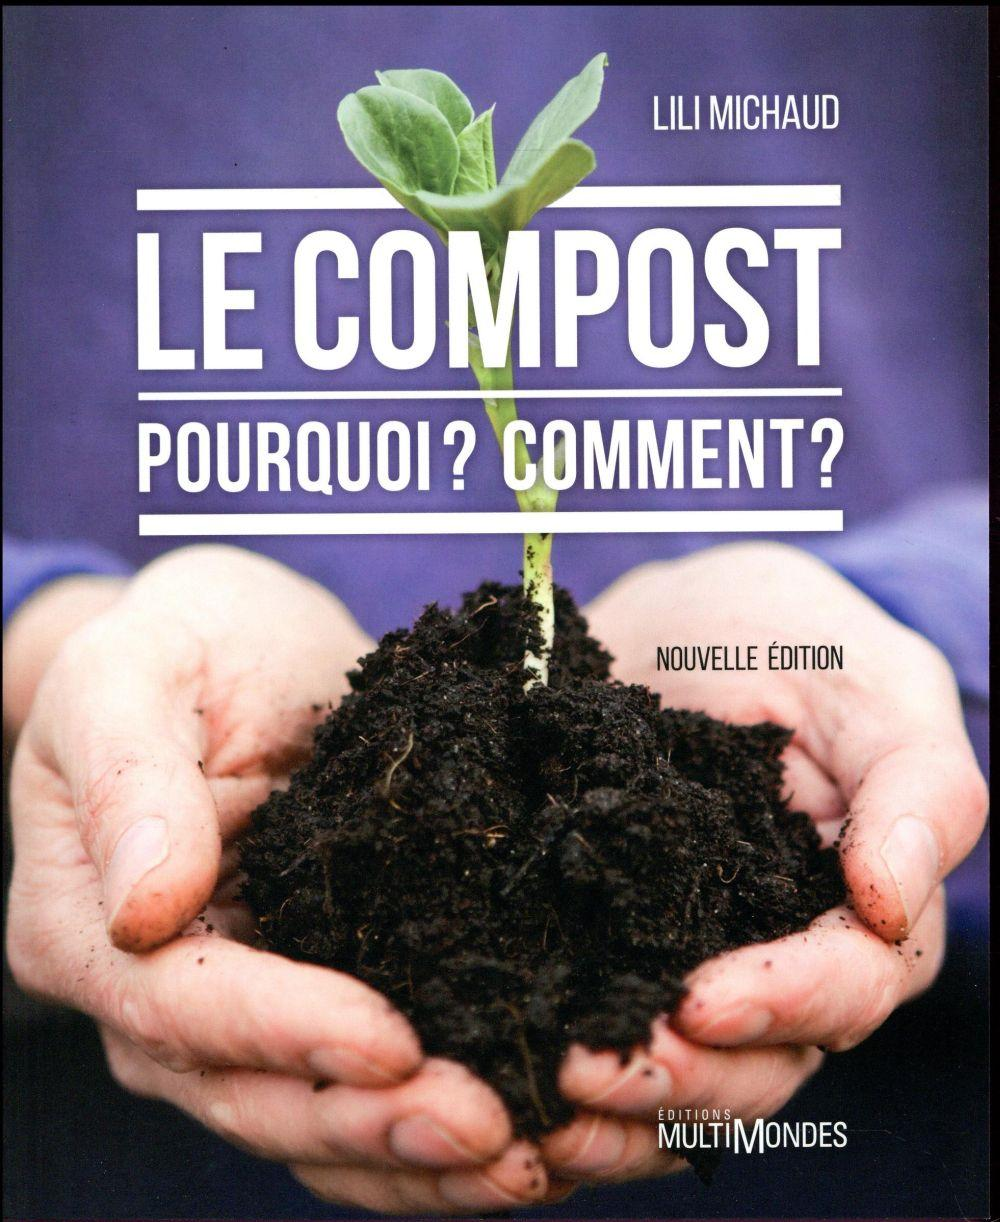 Le compost ; pourquoi ? comment ? (édition 2017)  - Lili Michaud